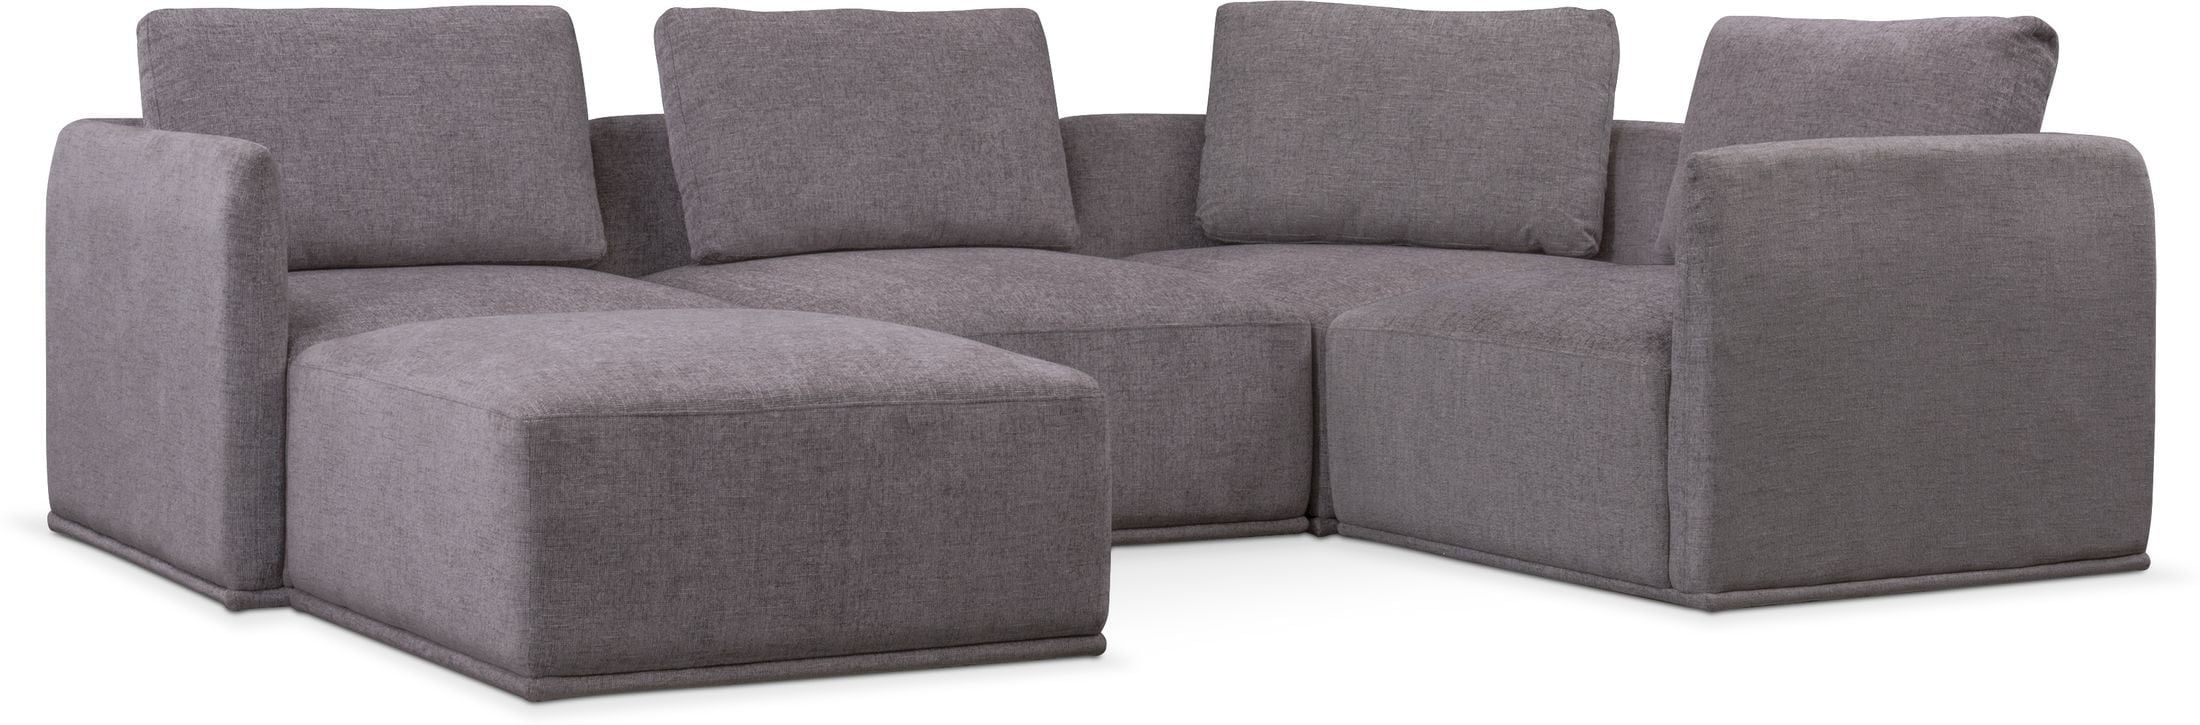 Living Room Furniture - Rio 5-Piece Sectional with 1 Armless Chair and Ottoman